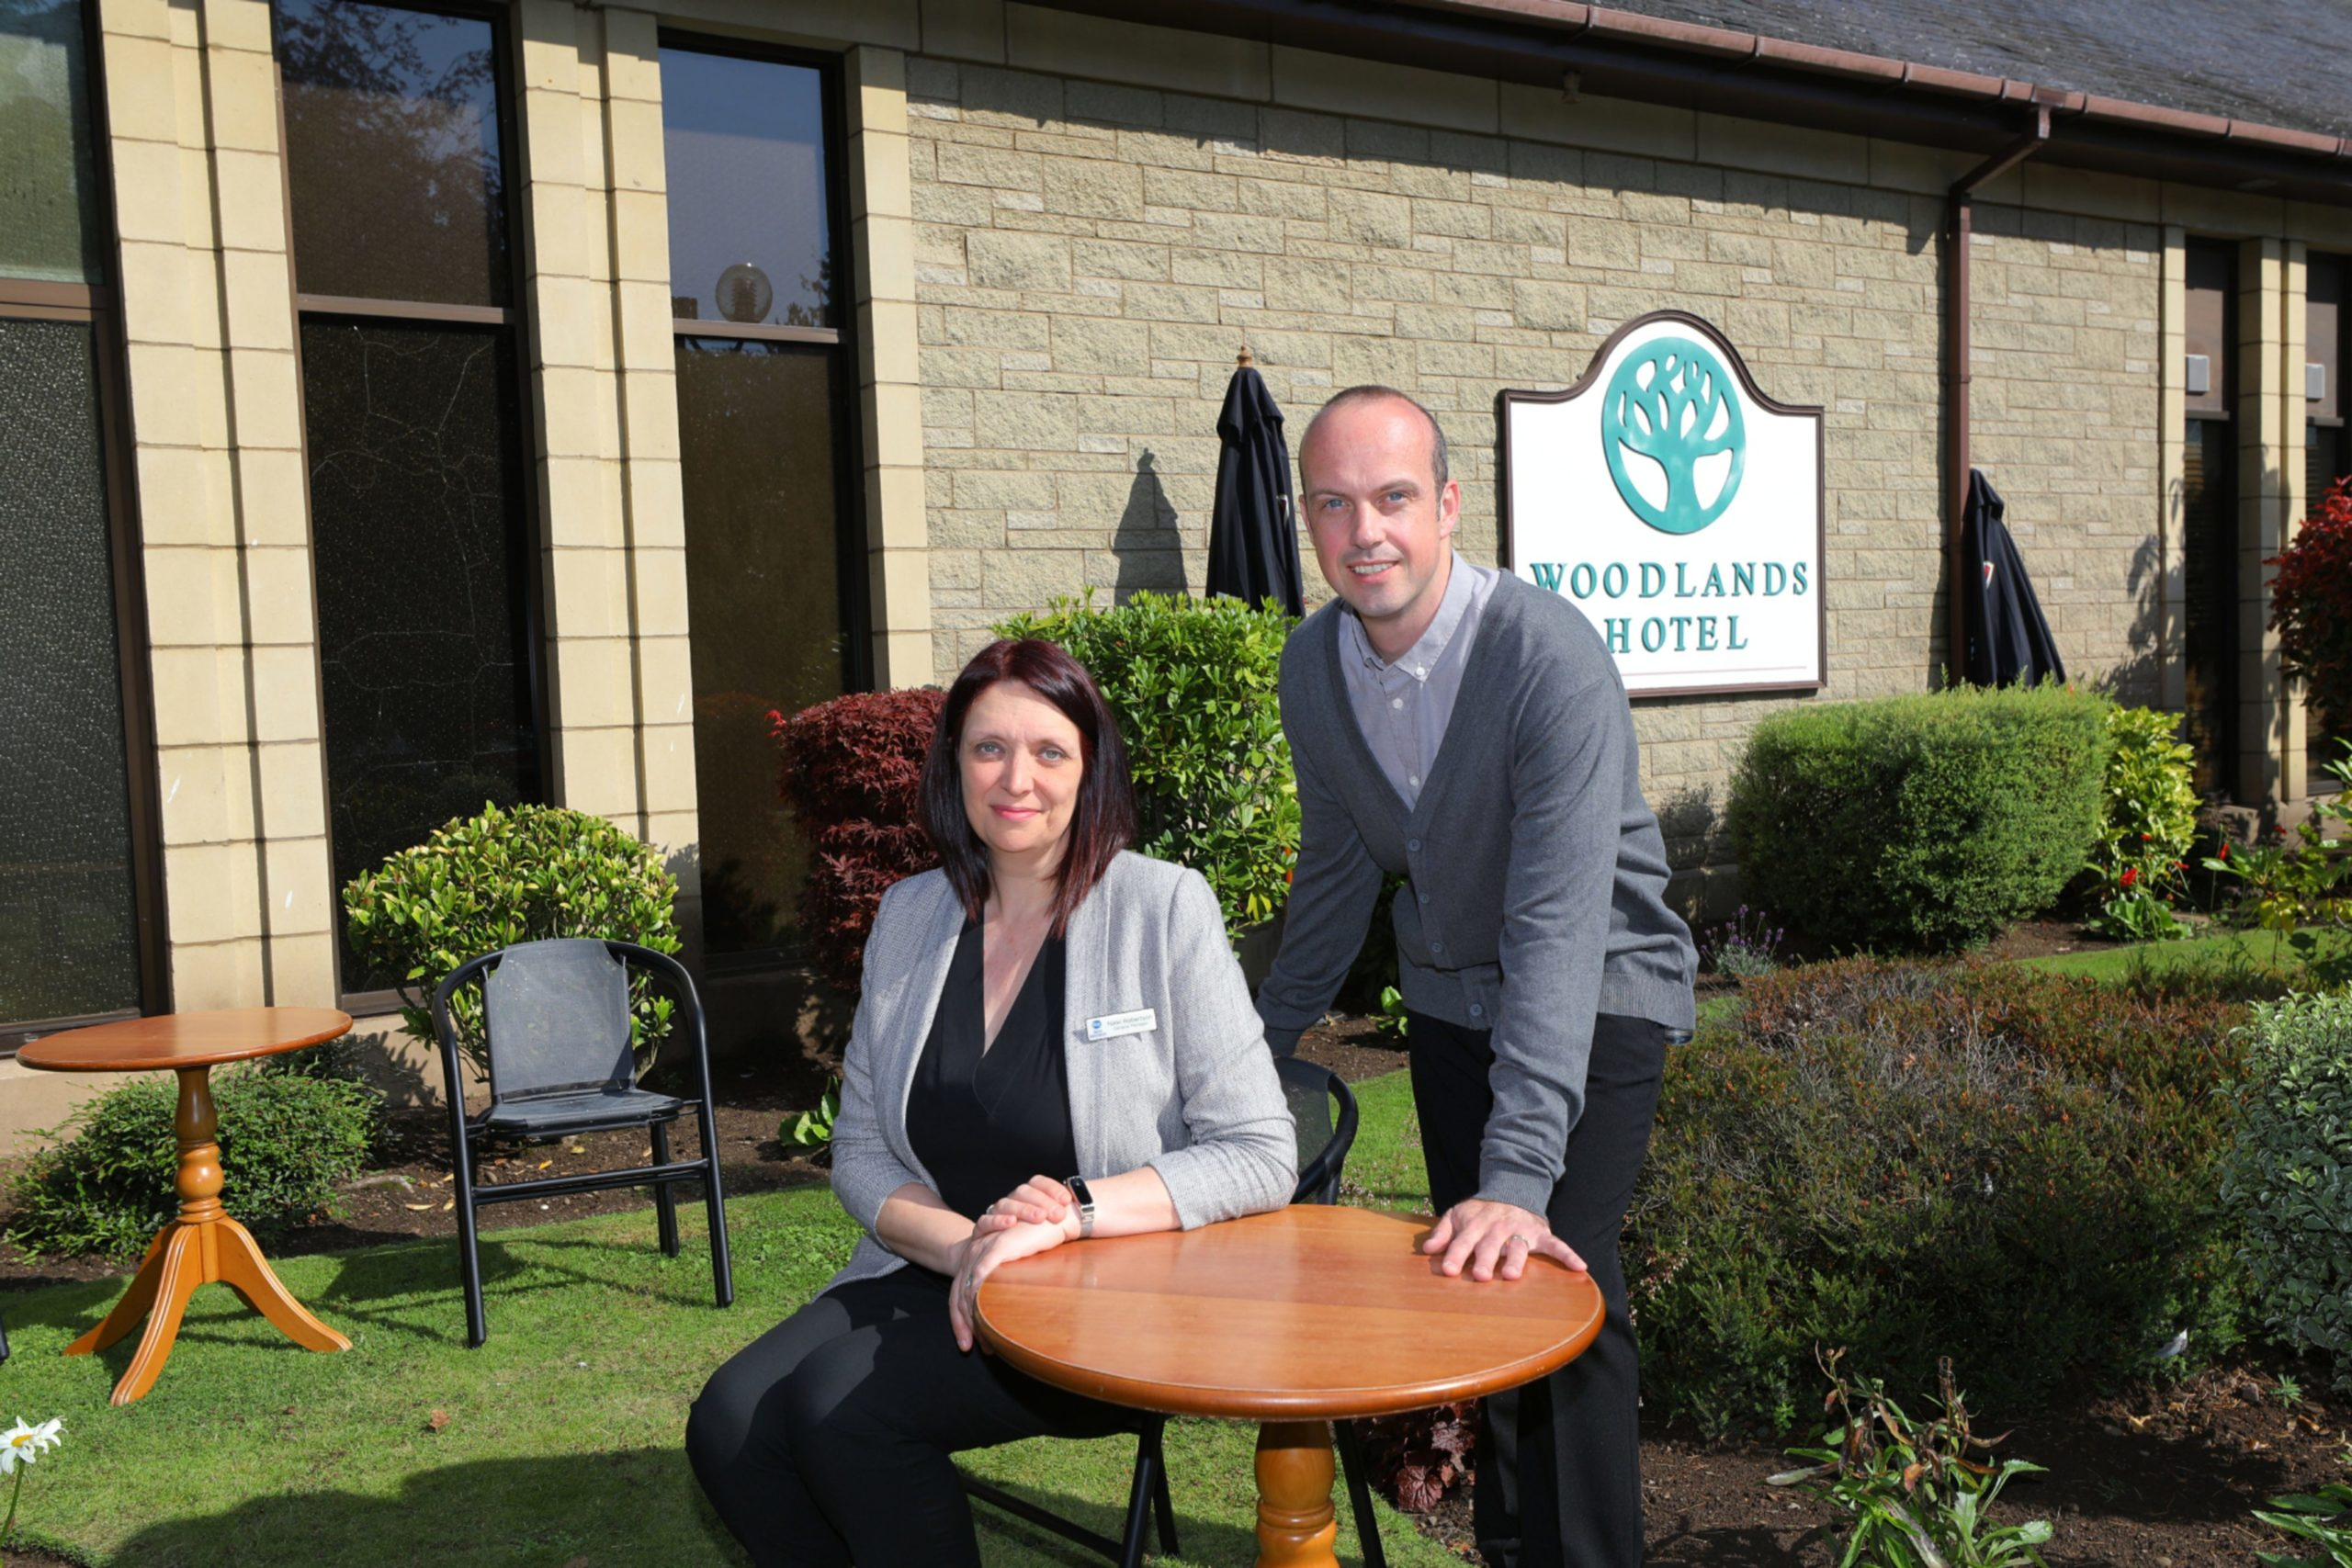 Nikki Robertson - General Manager and Ewan MacRae - Head Chef, at the Best Western Woodlands Hotel in Broughty Ferry.